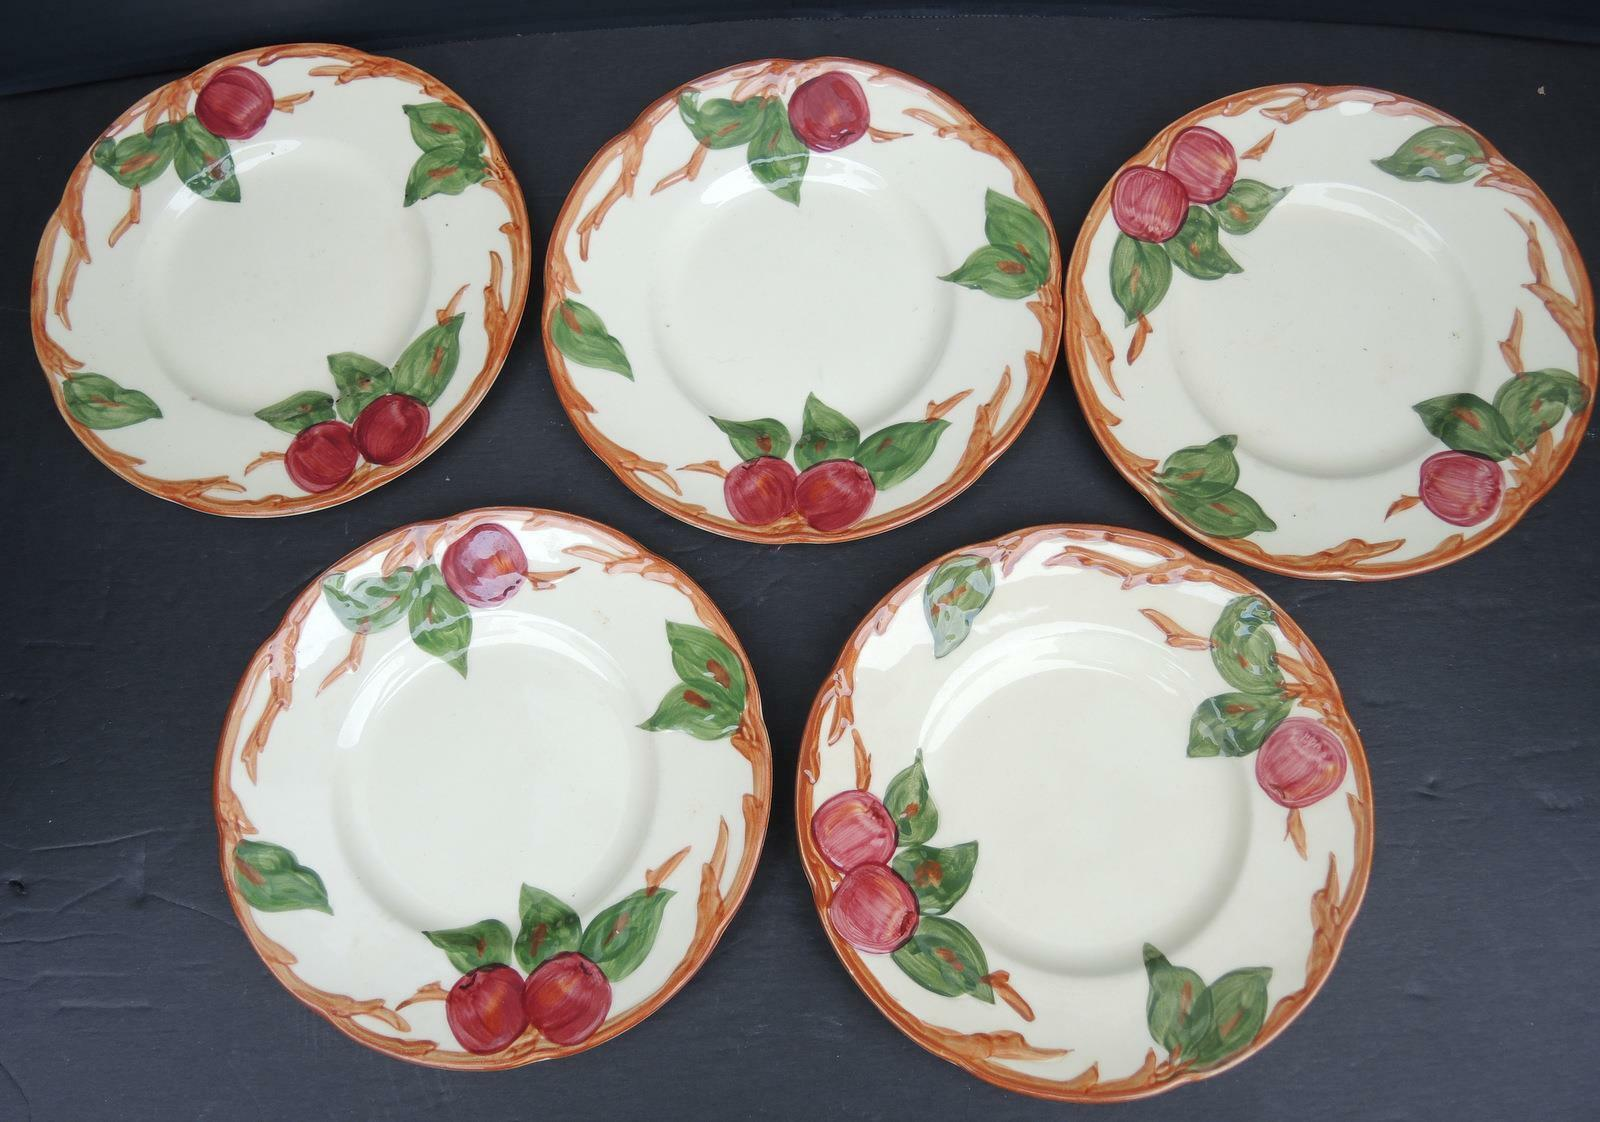 Five Vintage Franciscan Bread and Butter Plates - Apple Pattern